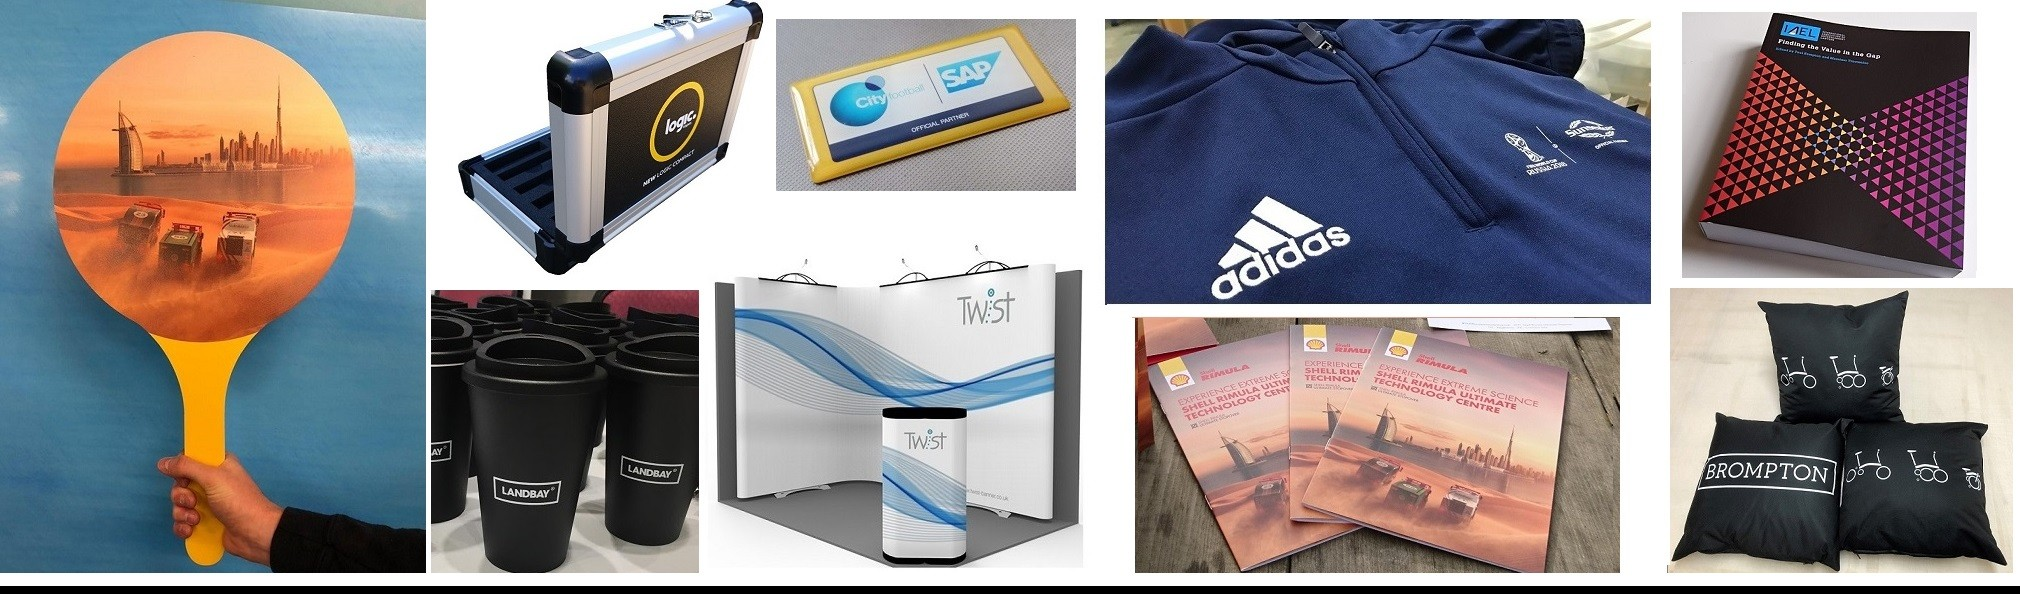 Slideshow Brochures Signs Bags Clothing Coffee Cups